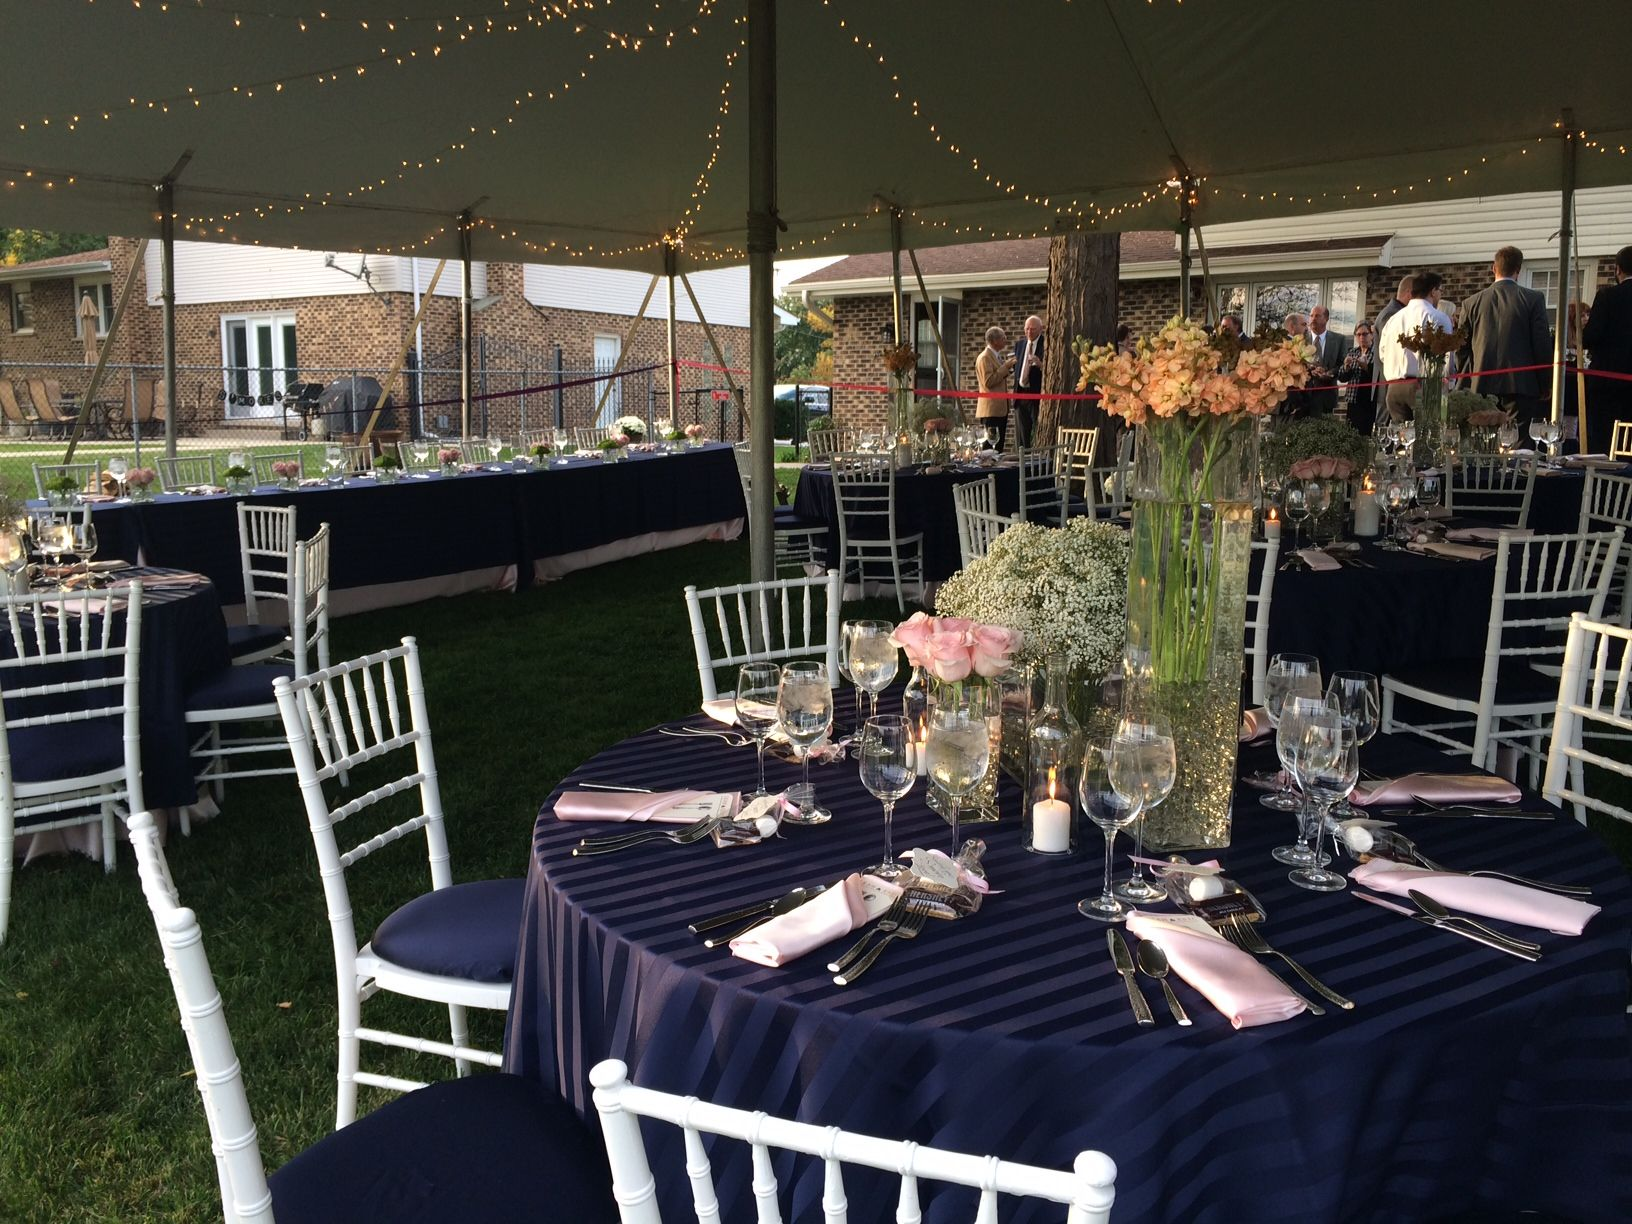 Outdoor Wedding Table Setting - Navy Blue White and Light Pink & Outdoor Wedding Table Setting - Navy Blue White and Light Pink ...